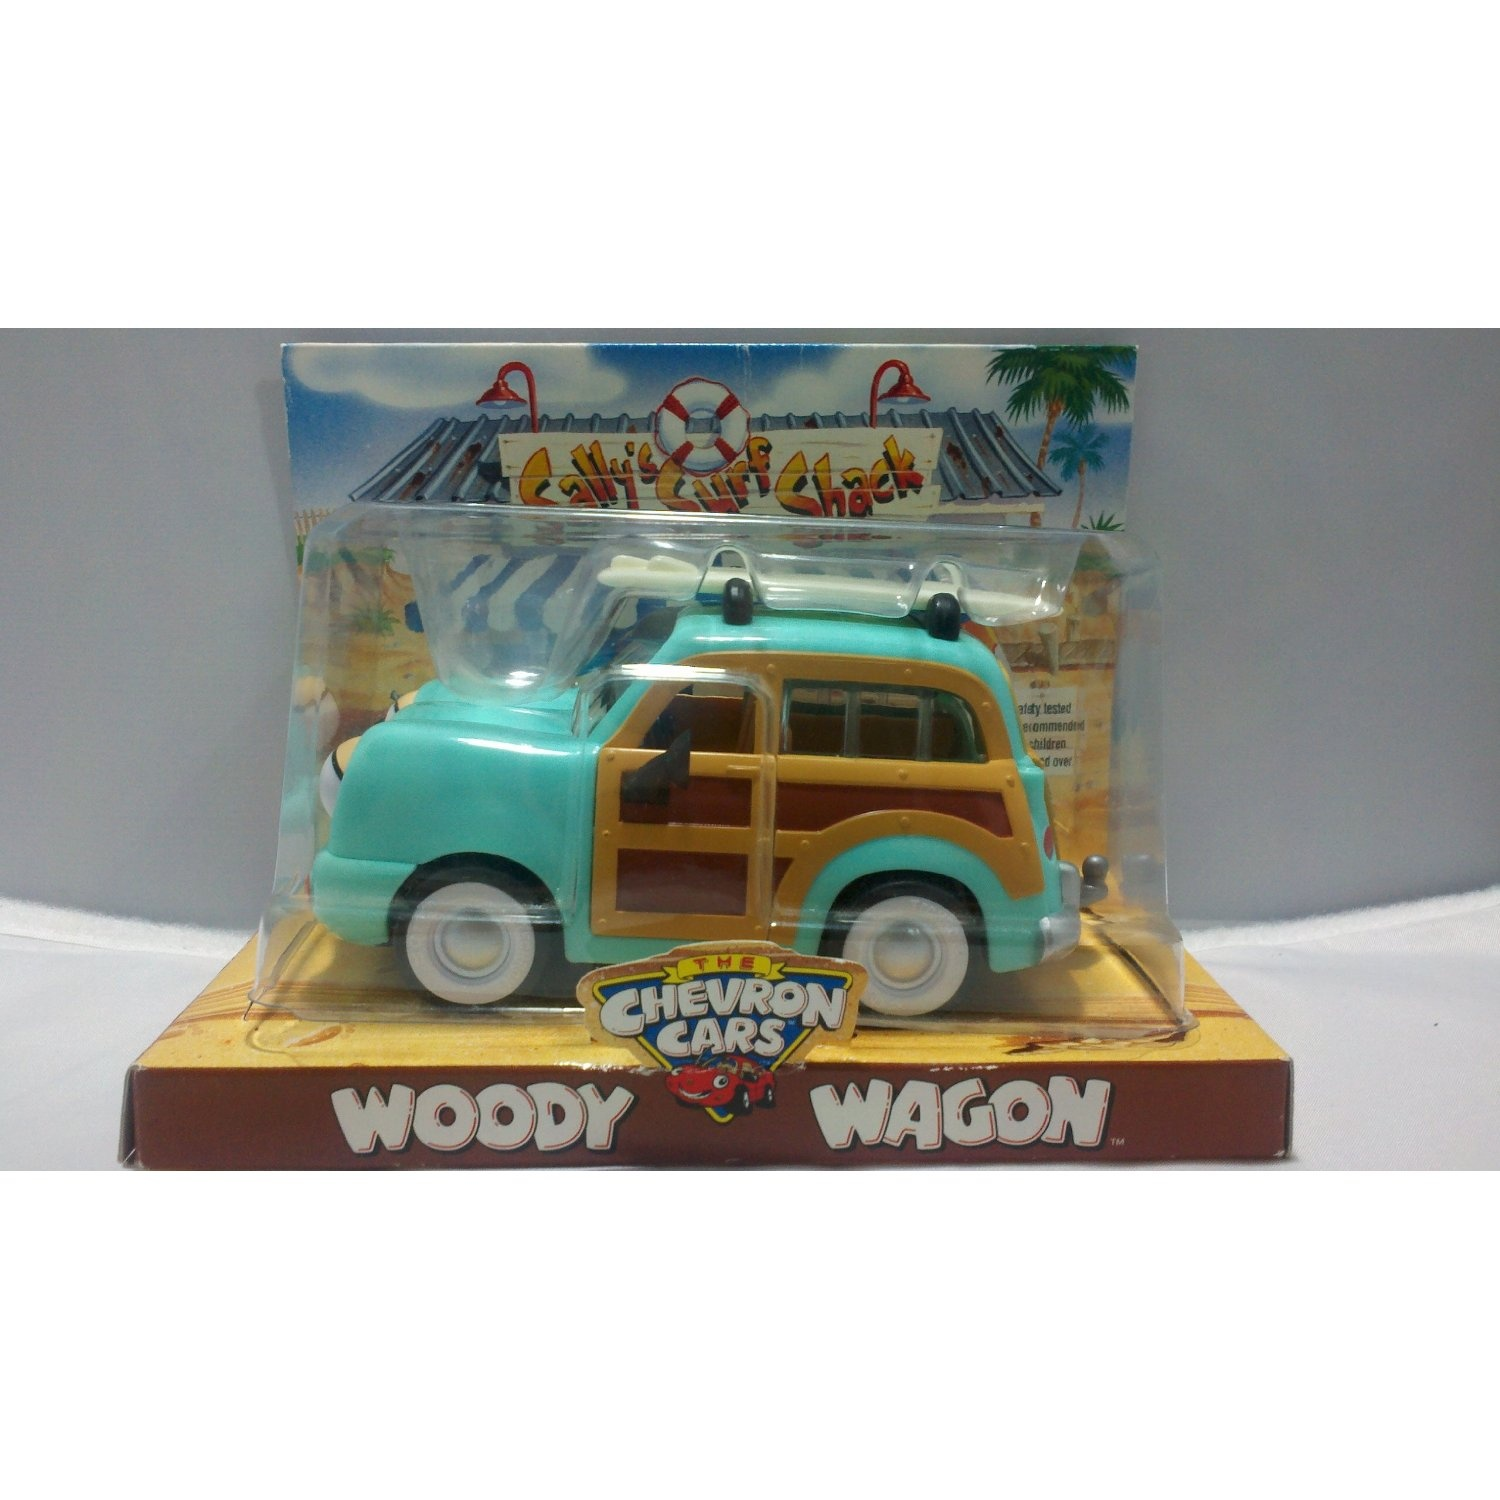 Chevron Toy Car Woody Waggon By Chevron Shop Online For Toys In